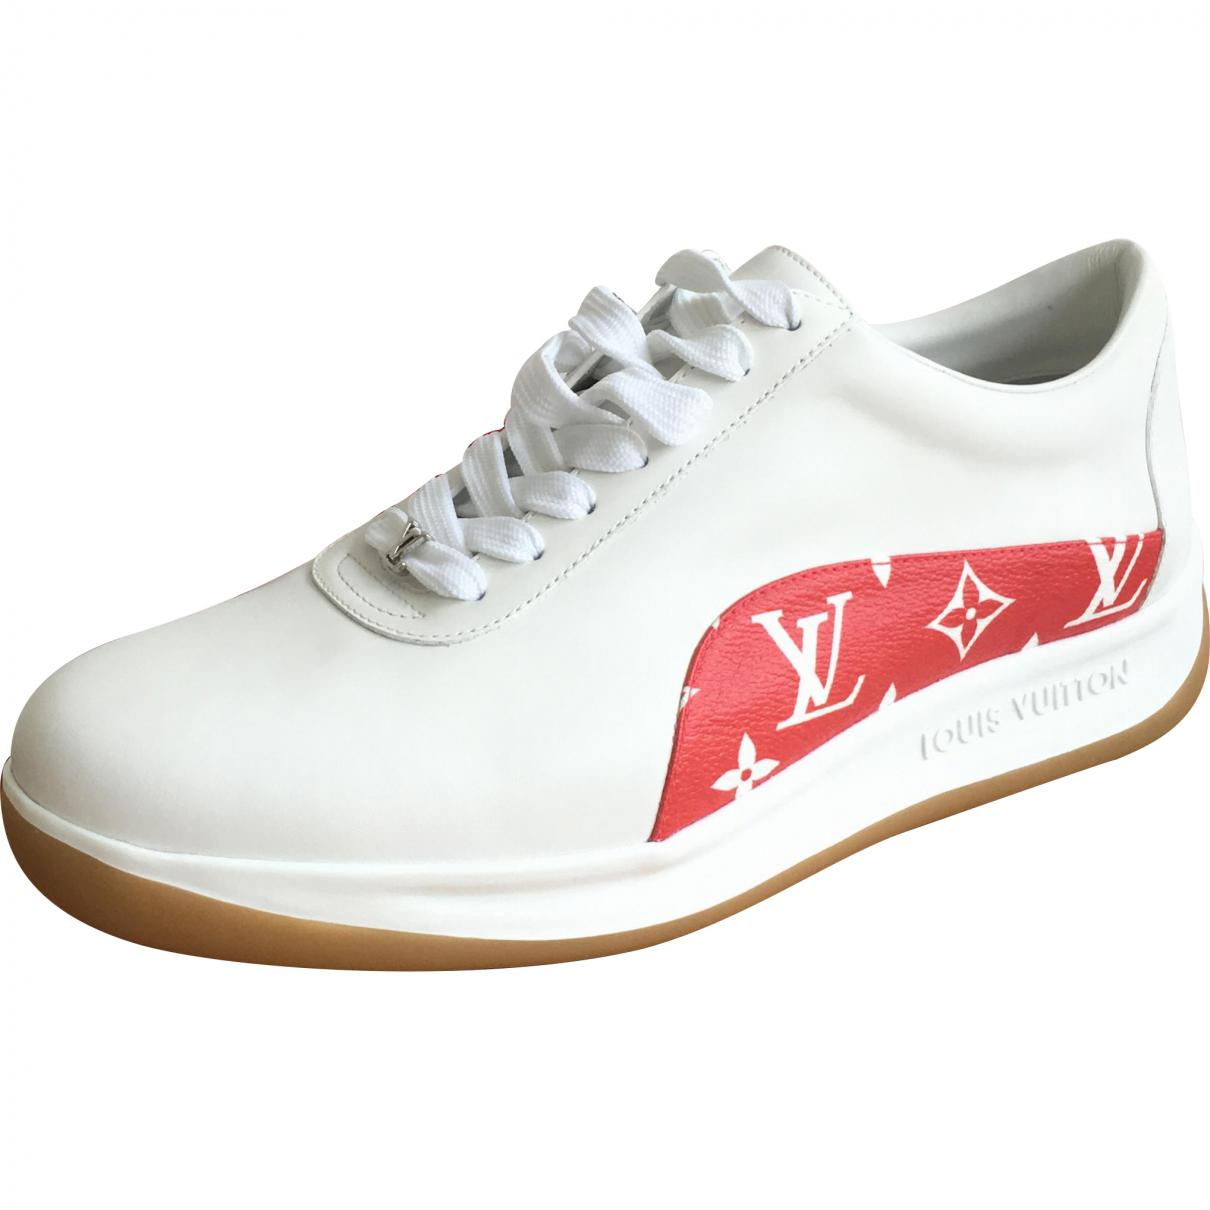 472ed26a721a Louis Vuitton White Leather Trainers in White for Men - Lyst